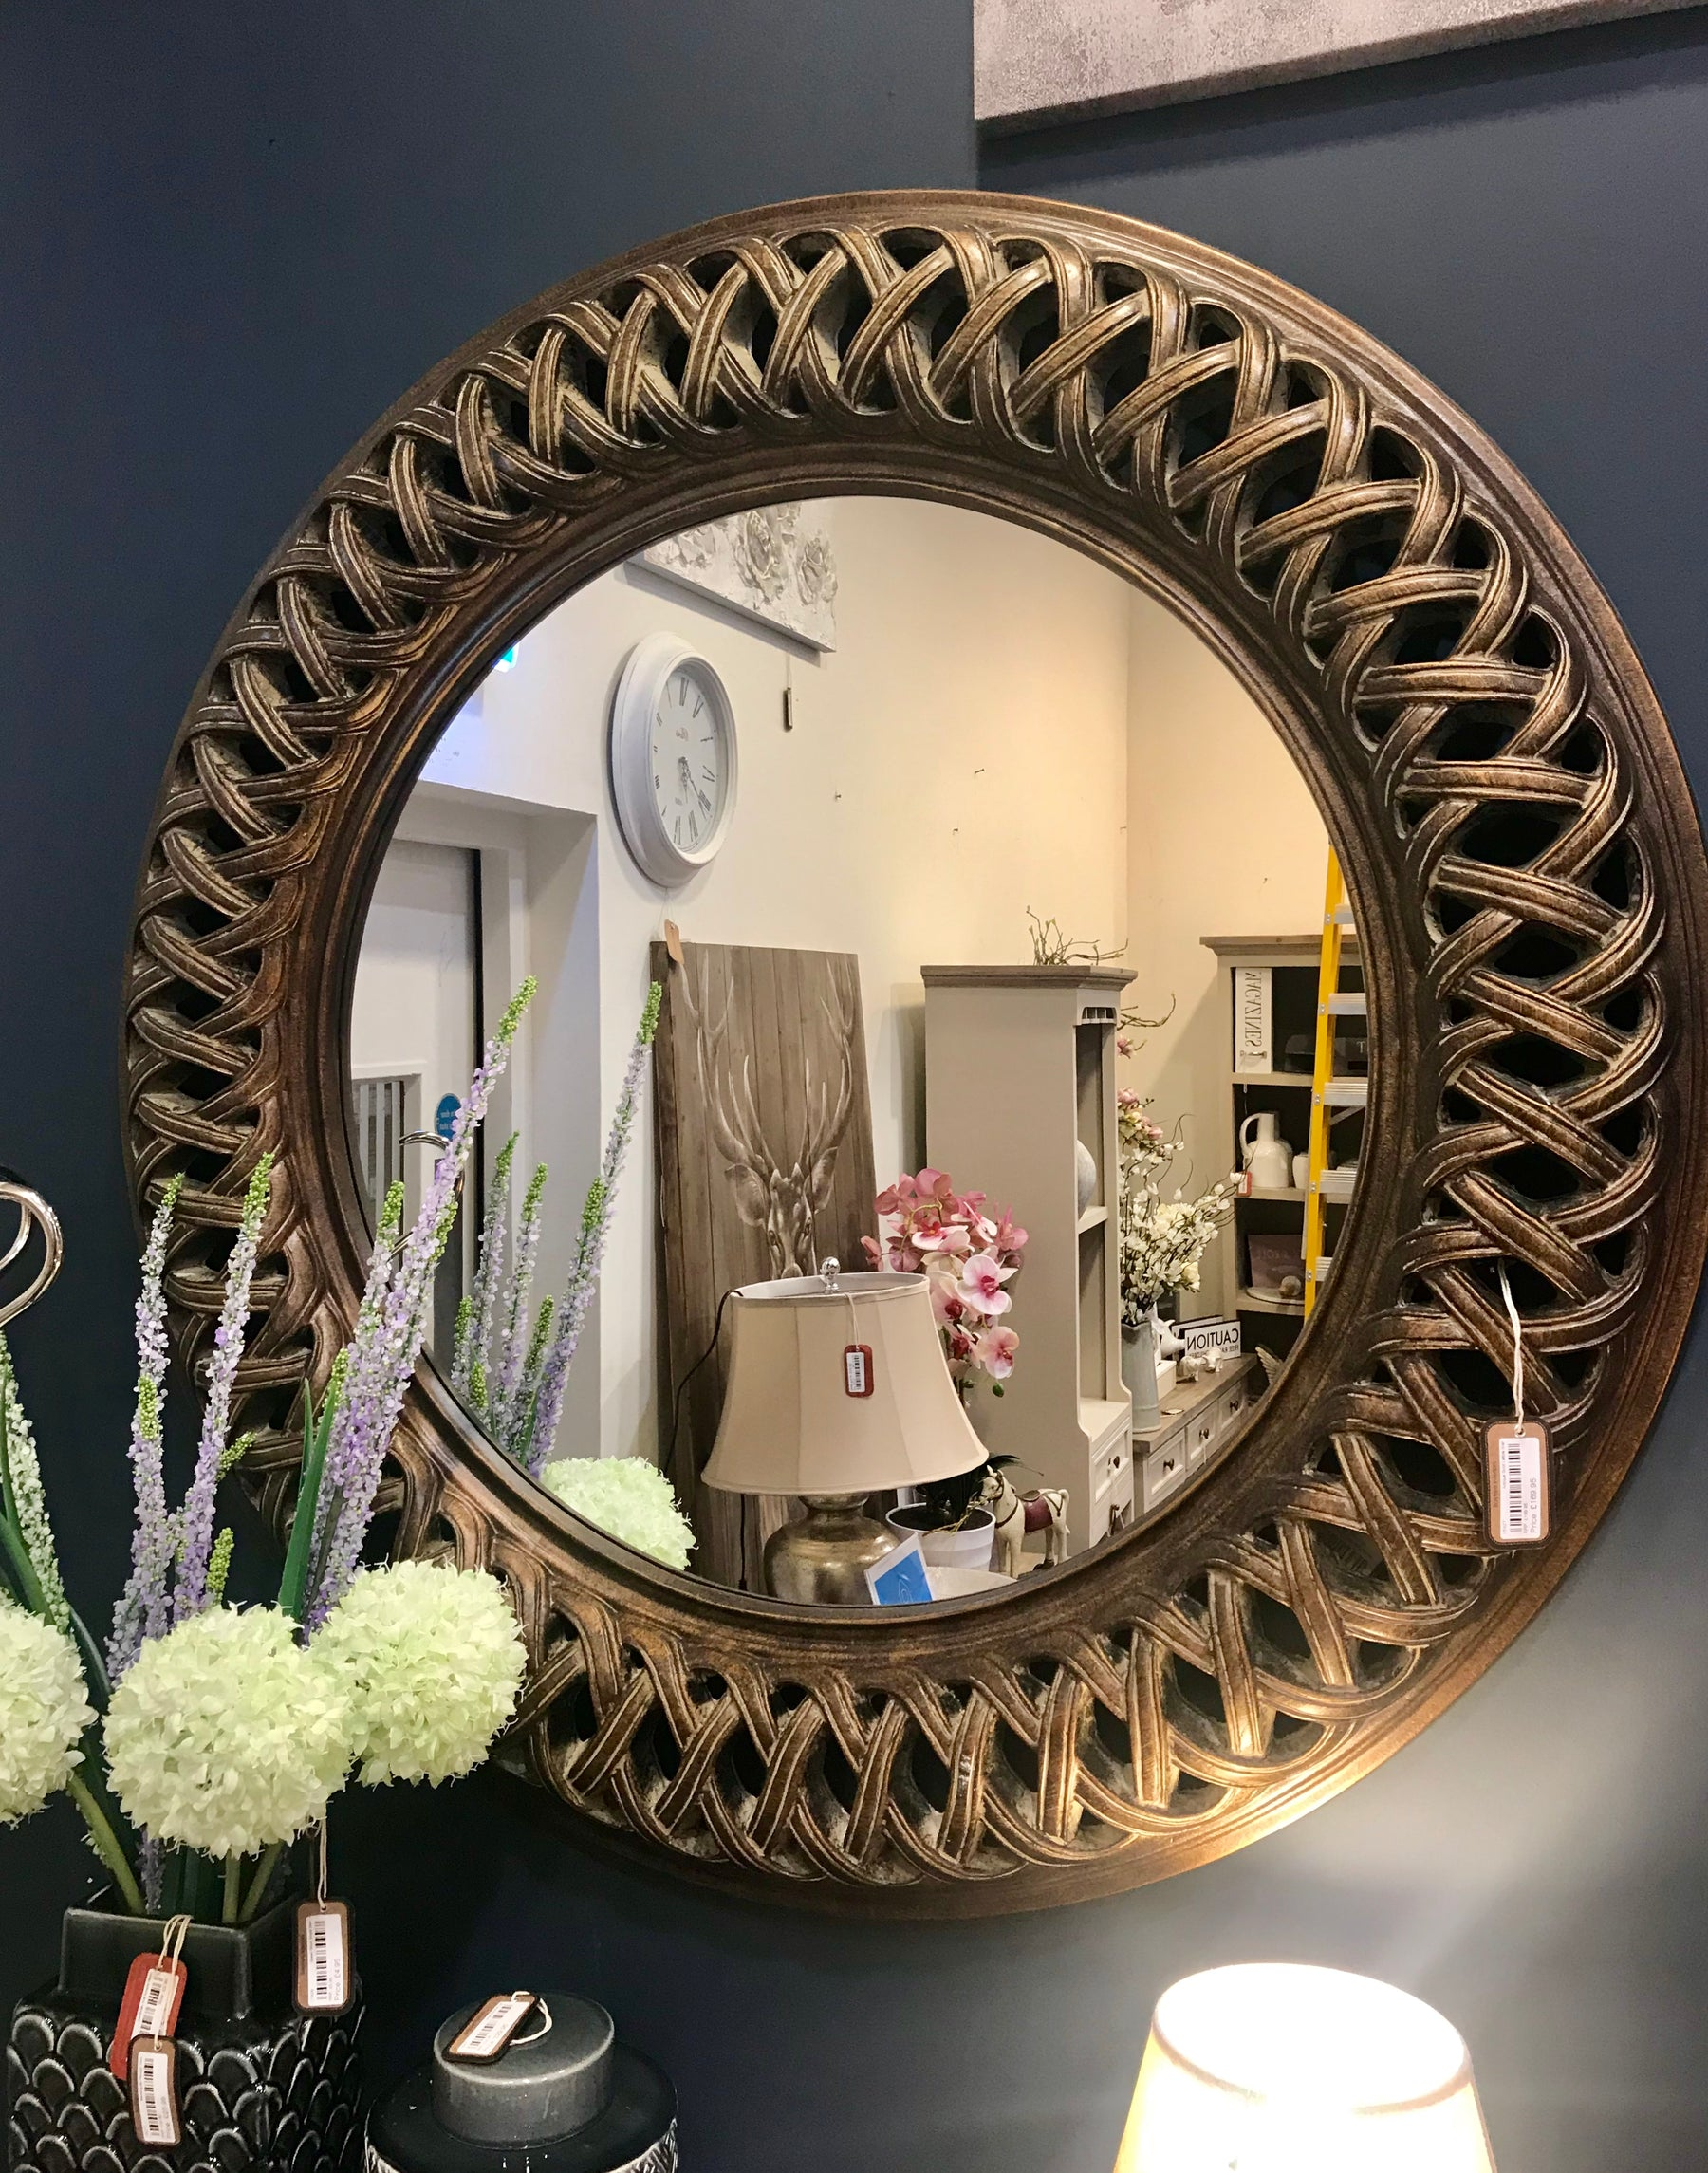 Vintage, Baroque & Shabby Chic Wall Mirrors